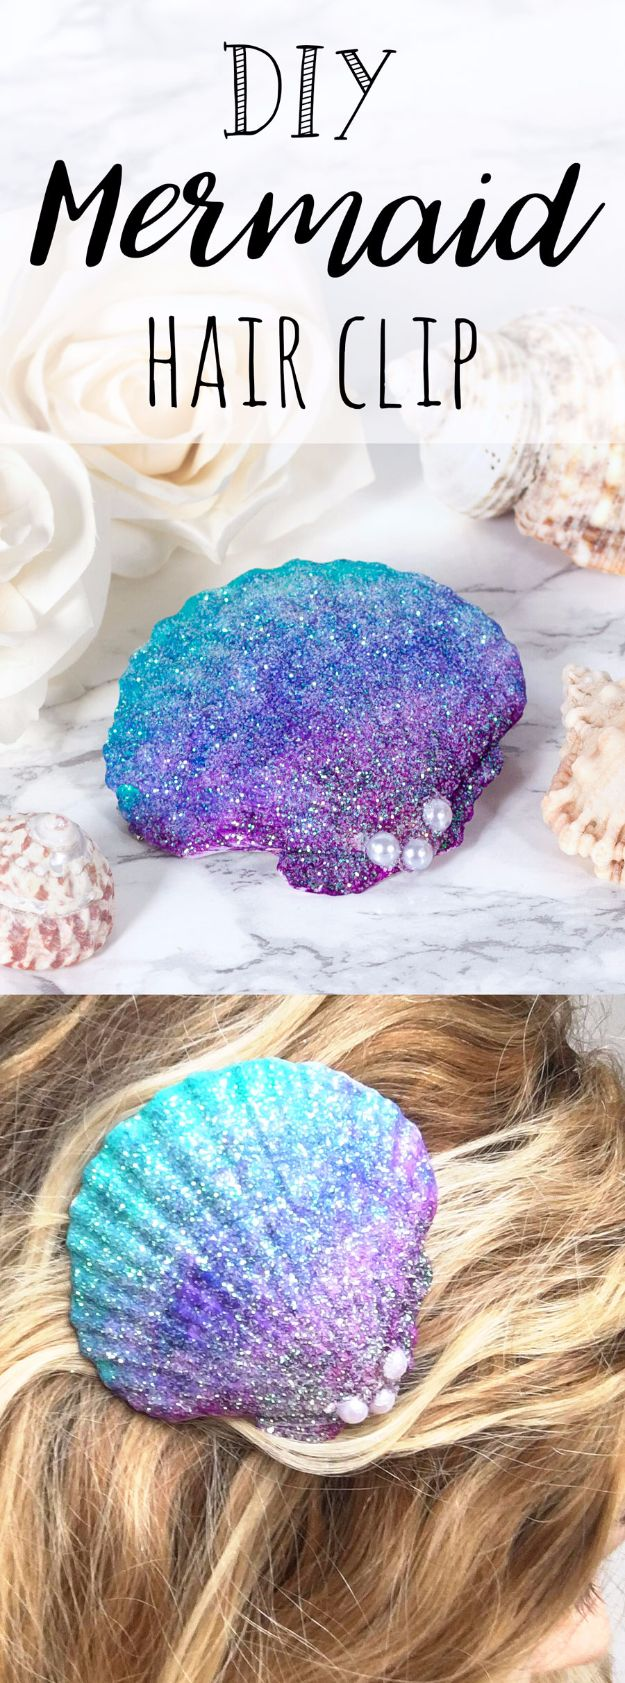 DIY Mermaid Crafts - DIY Mermaid Hair Clip - How To Make Room Decorations, Art Projects, Jewelry, and Makeup For Kids, Teens and Teenagers - Mermaid Costume Tutorials - Fun Clothes, Pillow Projects, Mermaid Tail Tutorial http://diyprojectsforteens.com/diy-mermaid-crafts